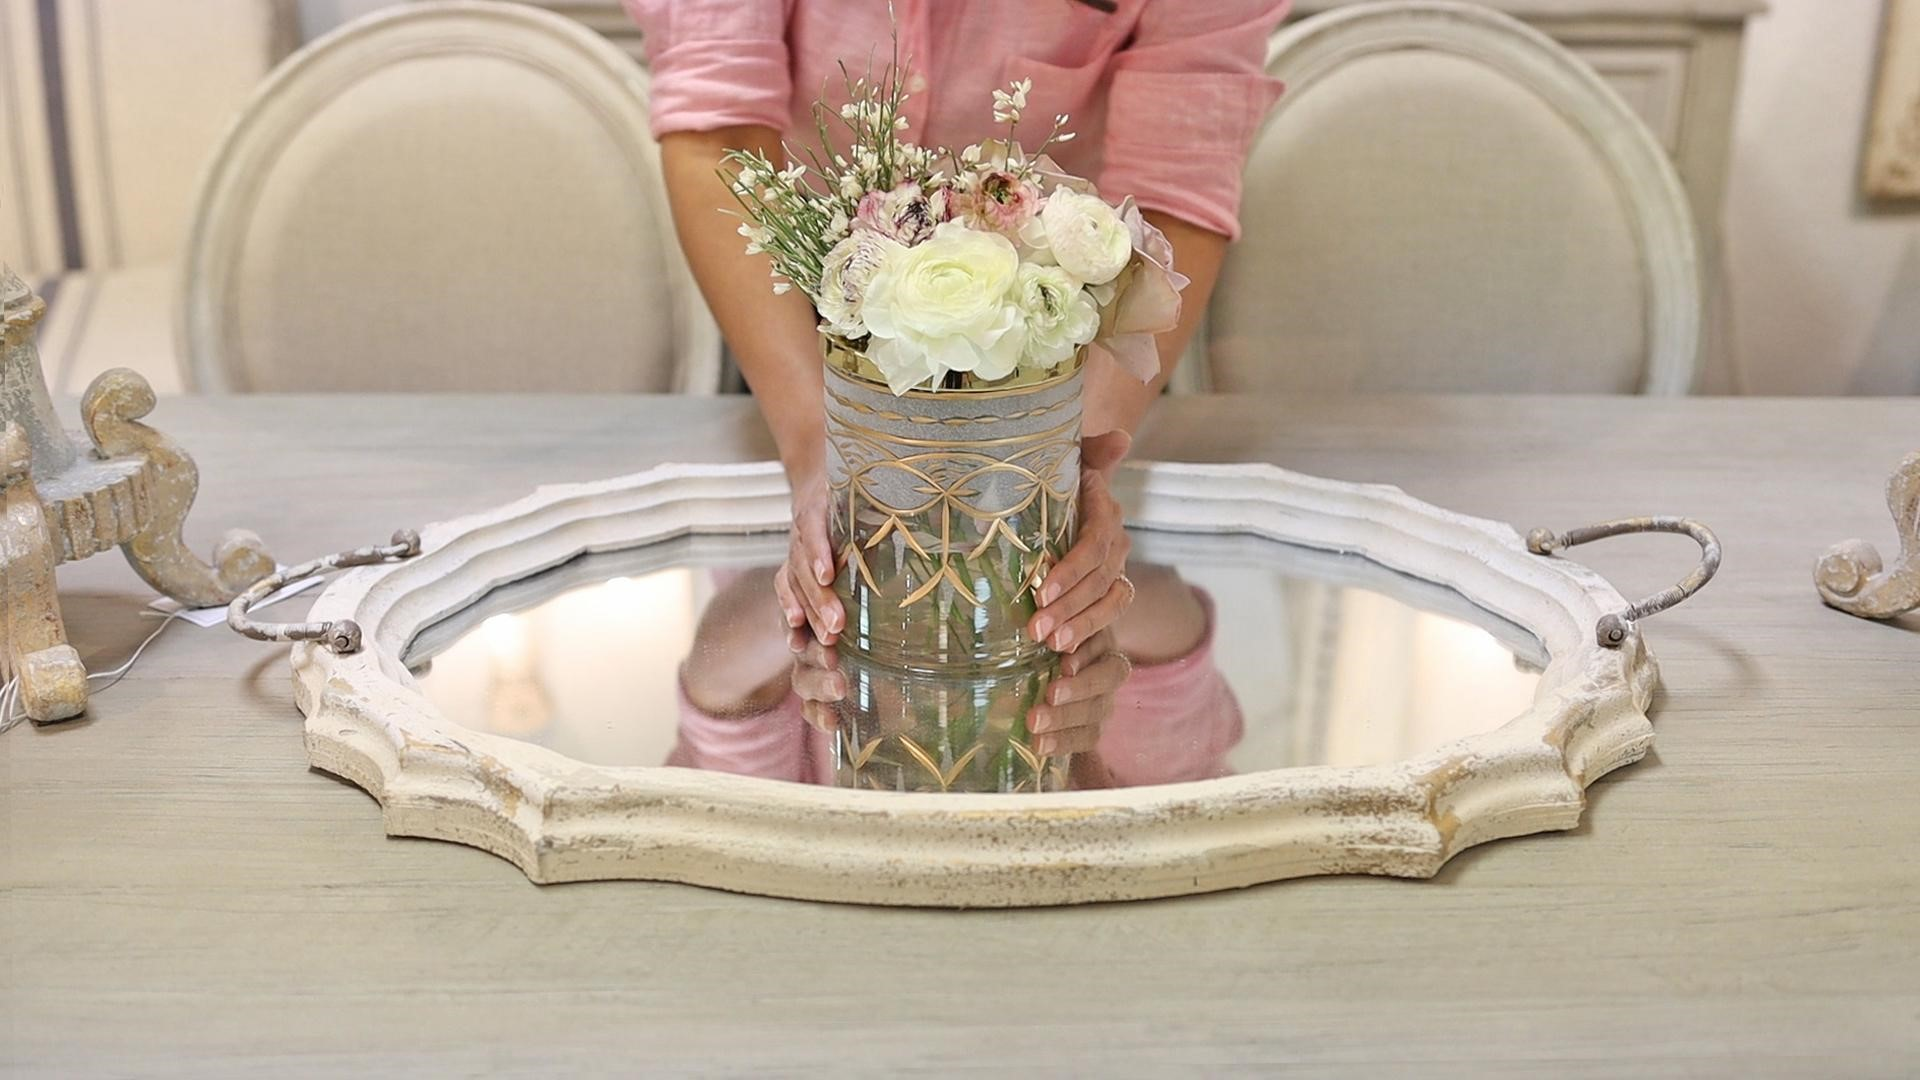 Amitha places medium floral arrangement in a short cylindrical vase on a mirrored tray